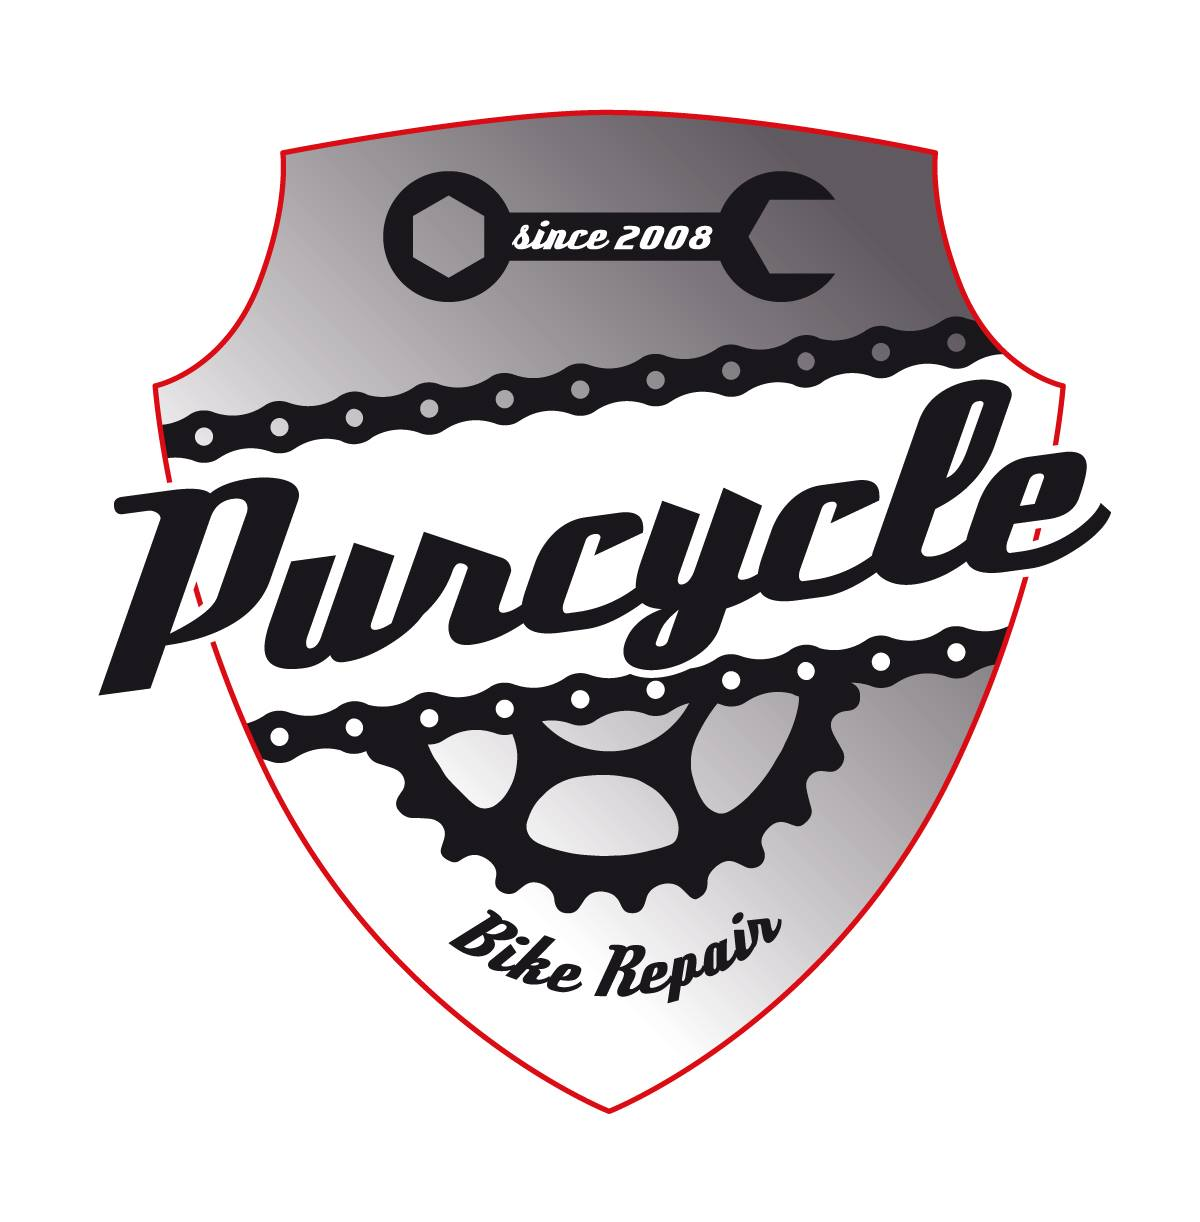 PurCycle à Bourges